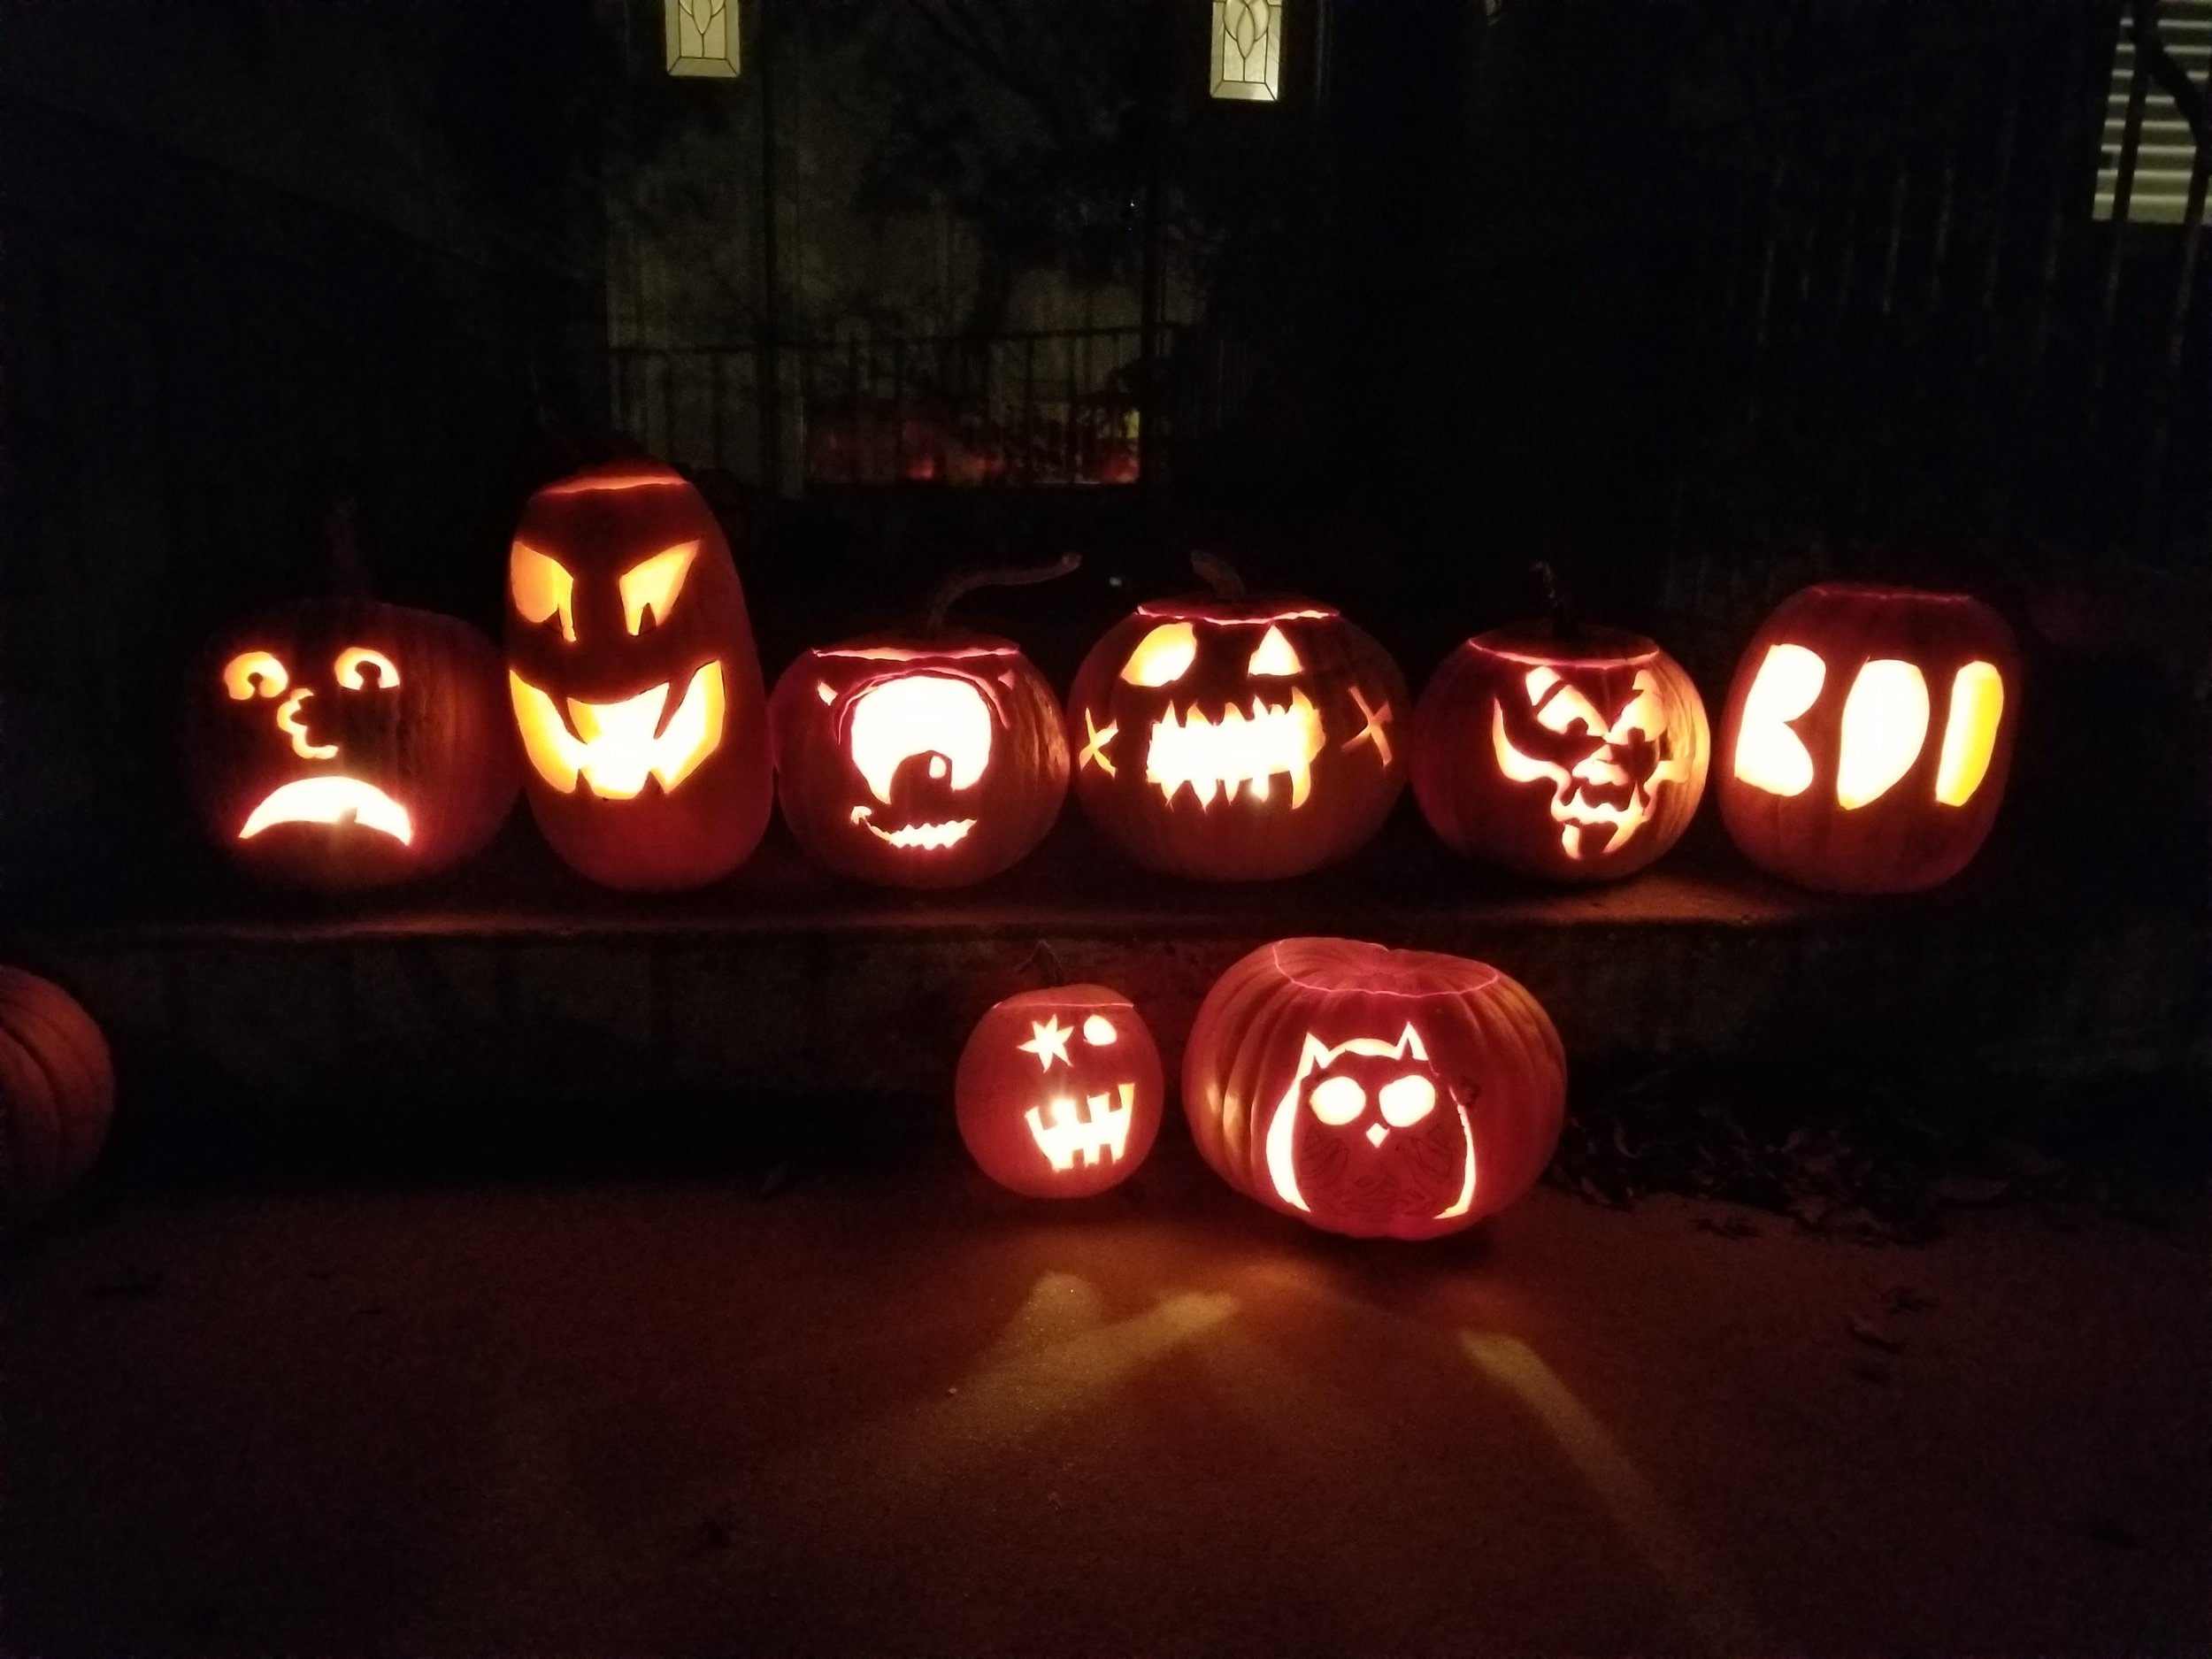 Happy Halloween! Put in some miles tonight to burn off that candy. Also, Halloween is AKA international FREE day!